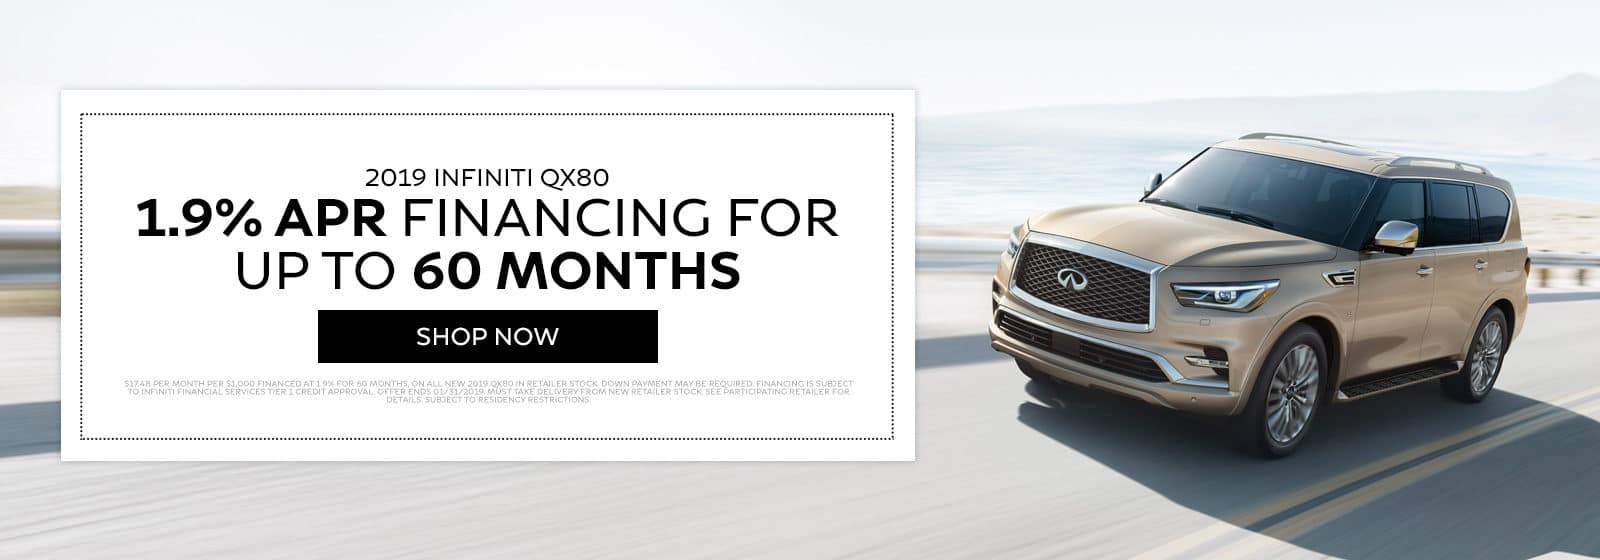 2019 INFINITI QX80 - 1.9% APR financing for up to 60 months - Shop Now